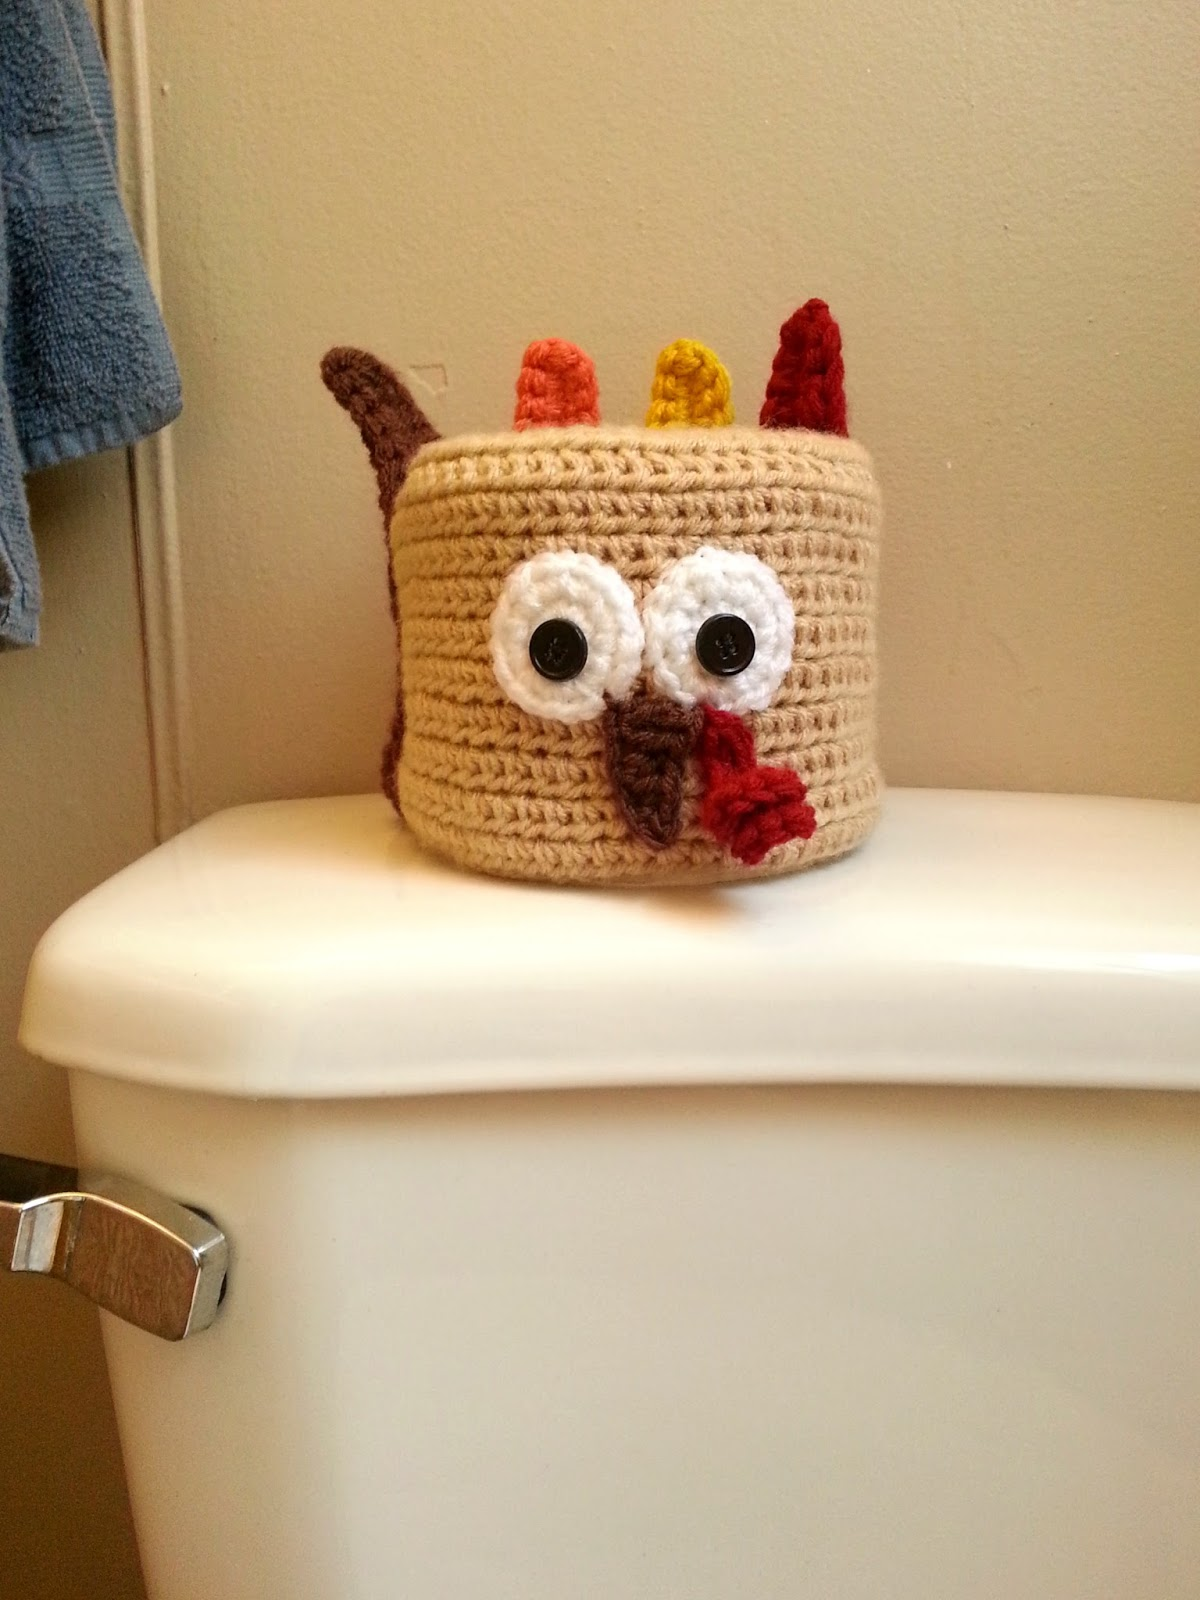 CuppaStitches: Thanksgiving Turkey Crochet Toilet Paper Roll Cover